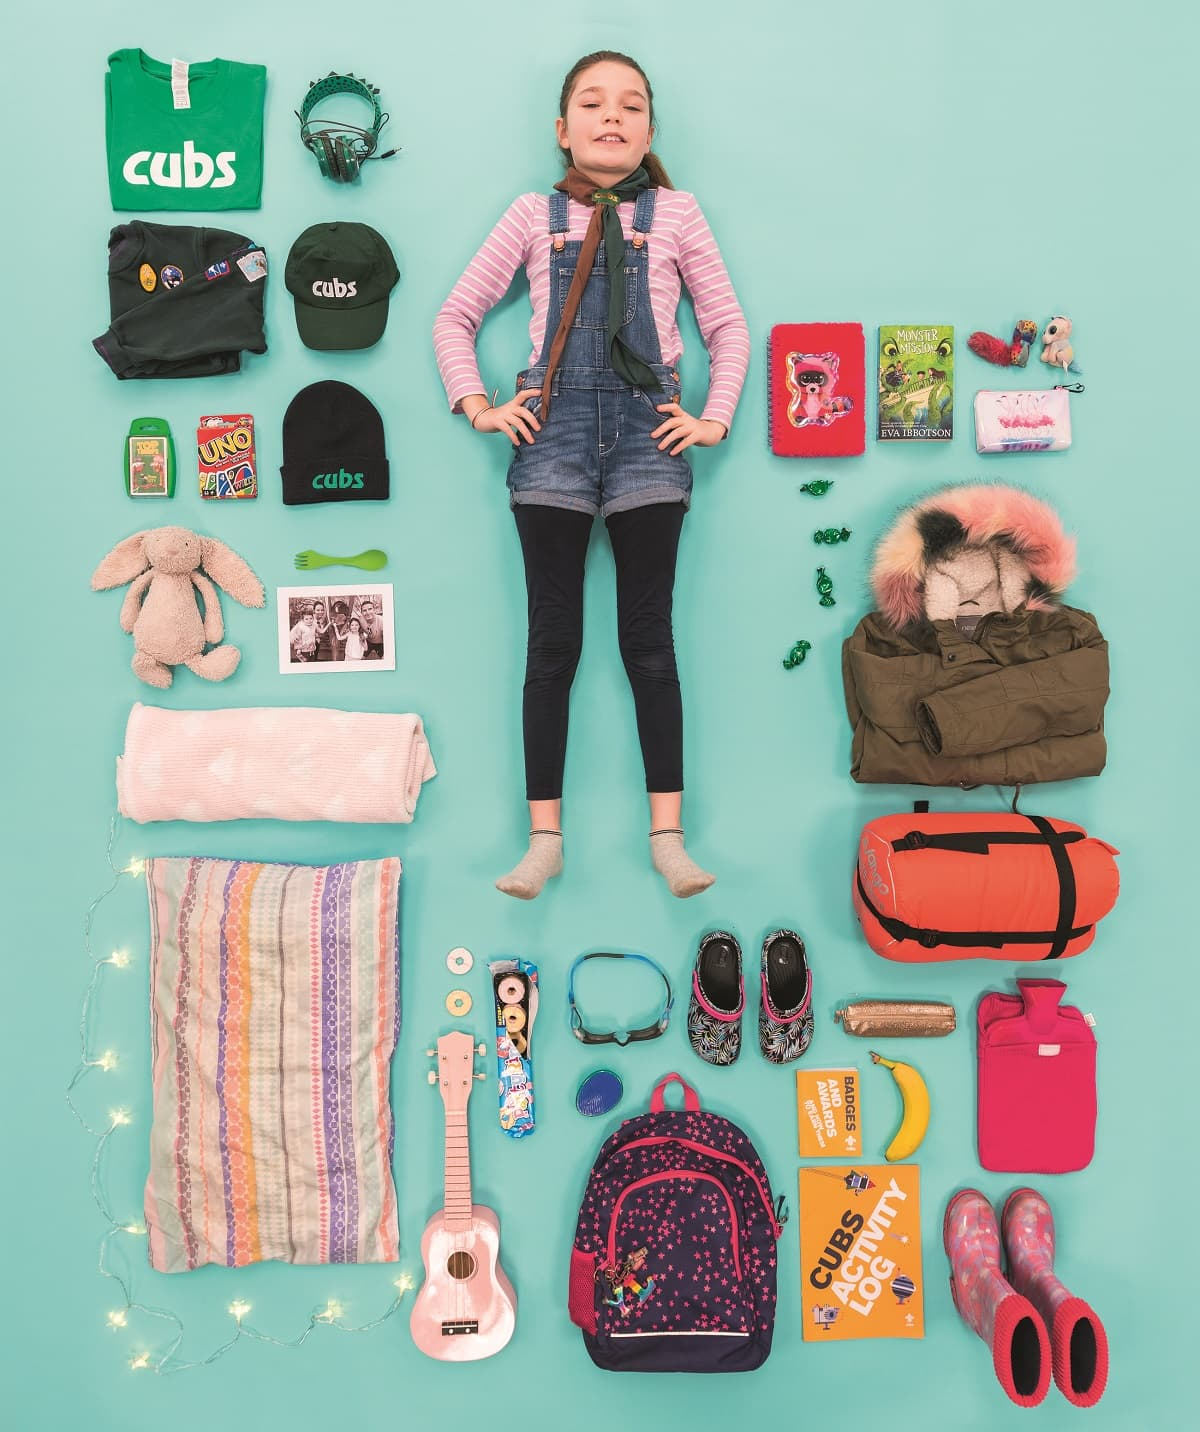 Lily, a cub scout, with all of her favourite things she takes on camp